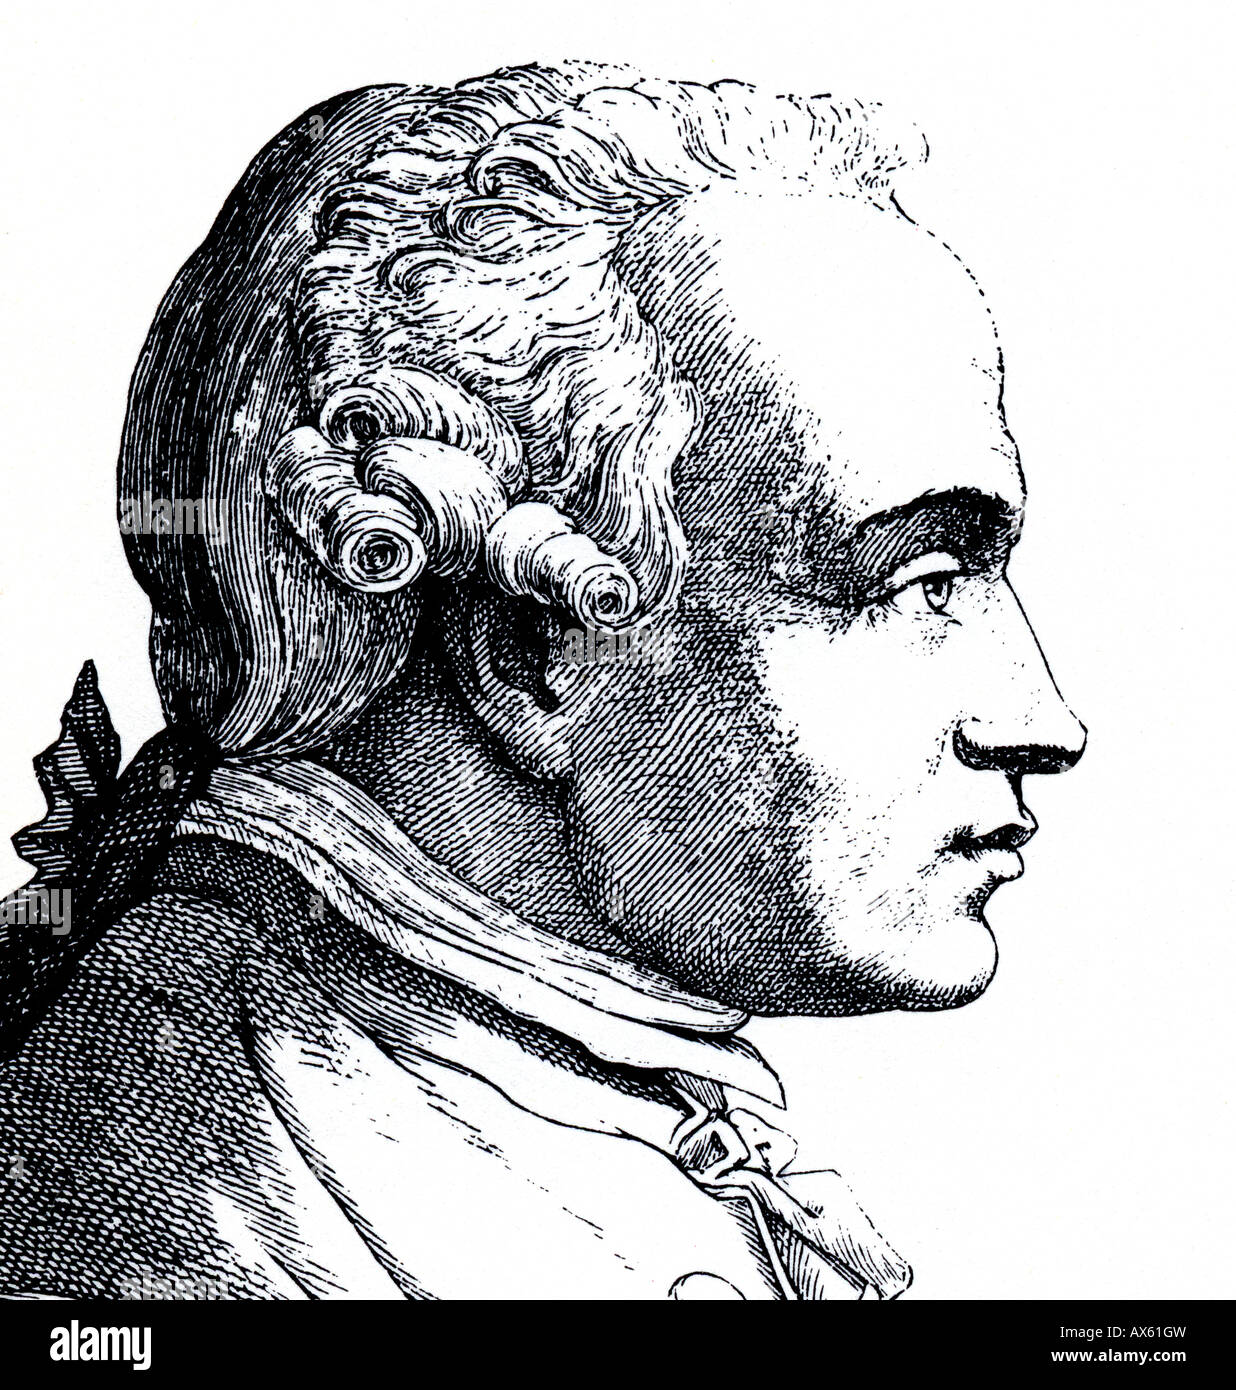 """an analysis of the philosopher immanuel kant Herent philosophical critique2 kant's philosophy did, however, contain a no-   an essay competition organised by the berlin monthly, berlinische  2  immanuel kant, """"idea for a universal history with a cosmopolitan purpose,"""" in po ."""